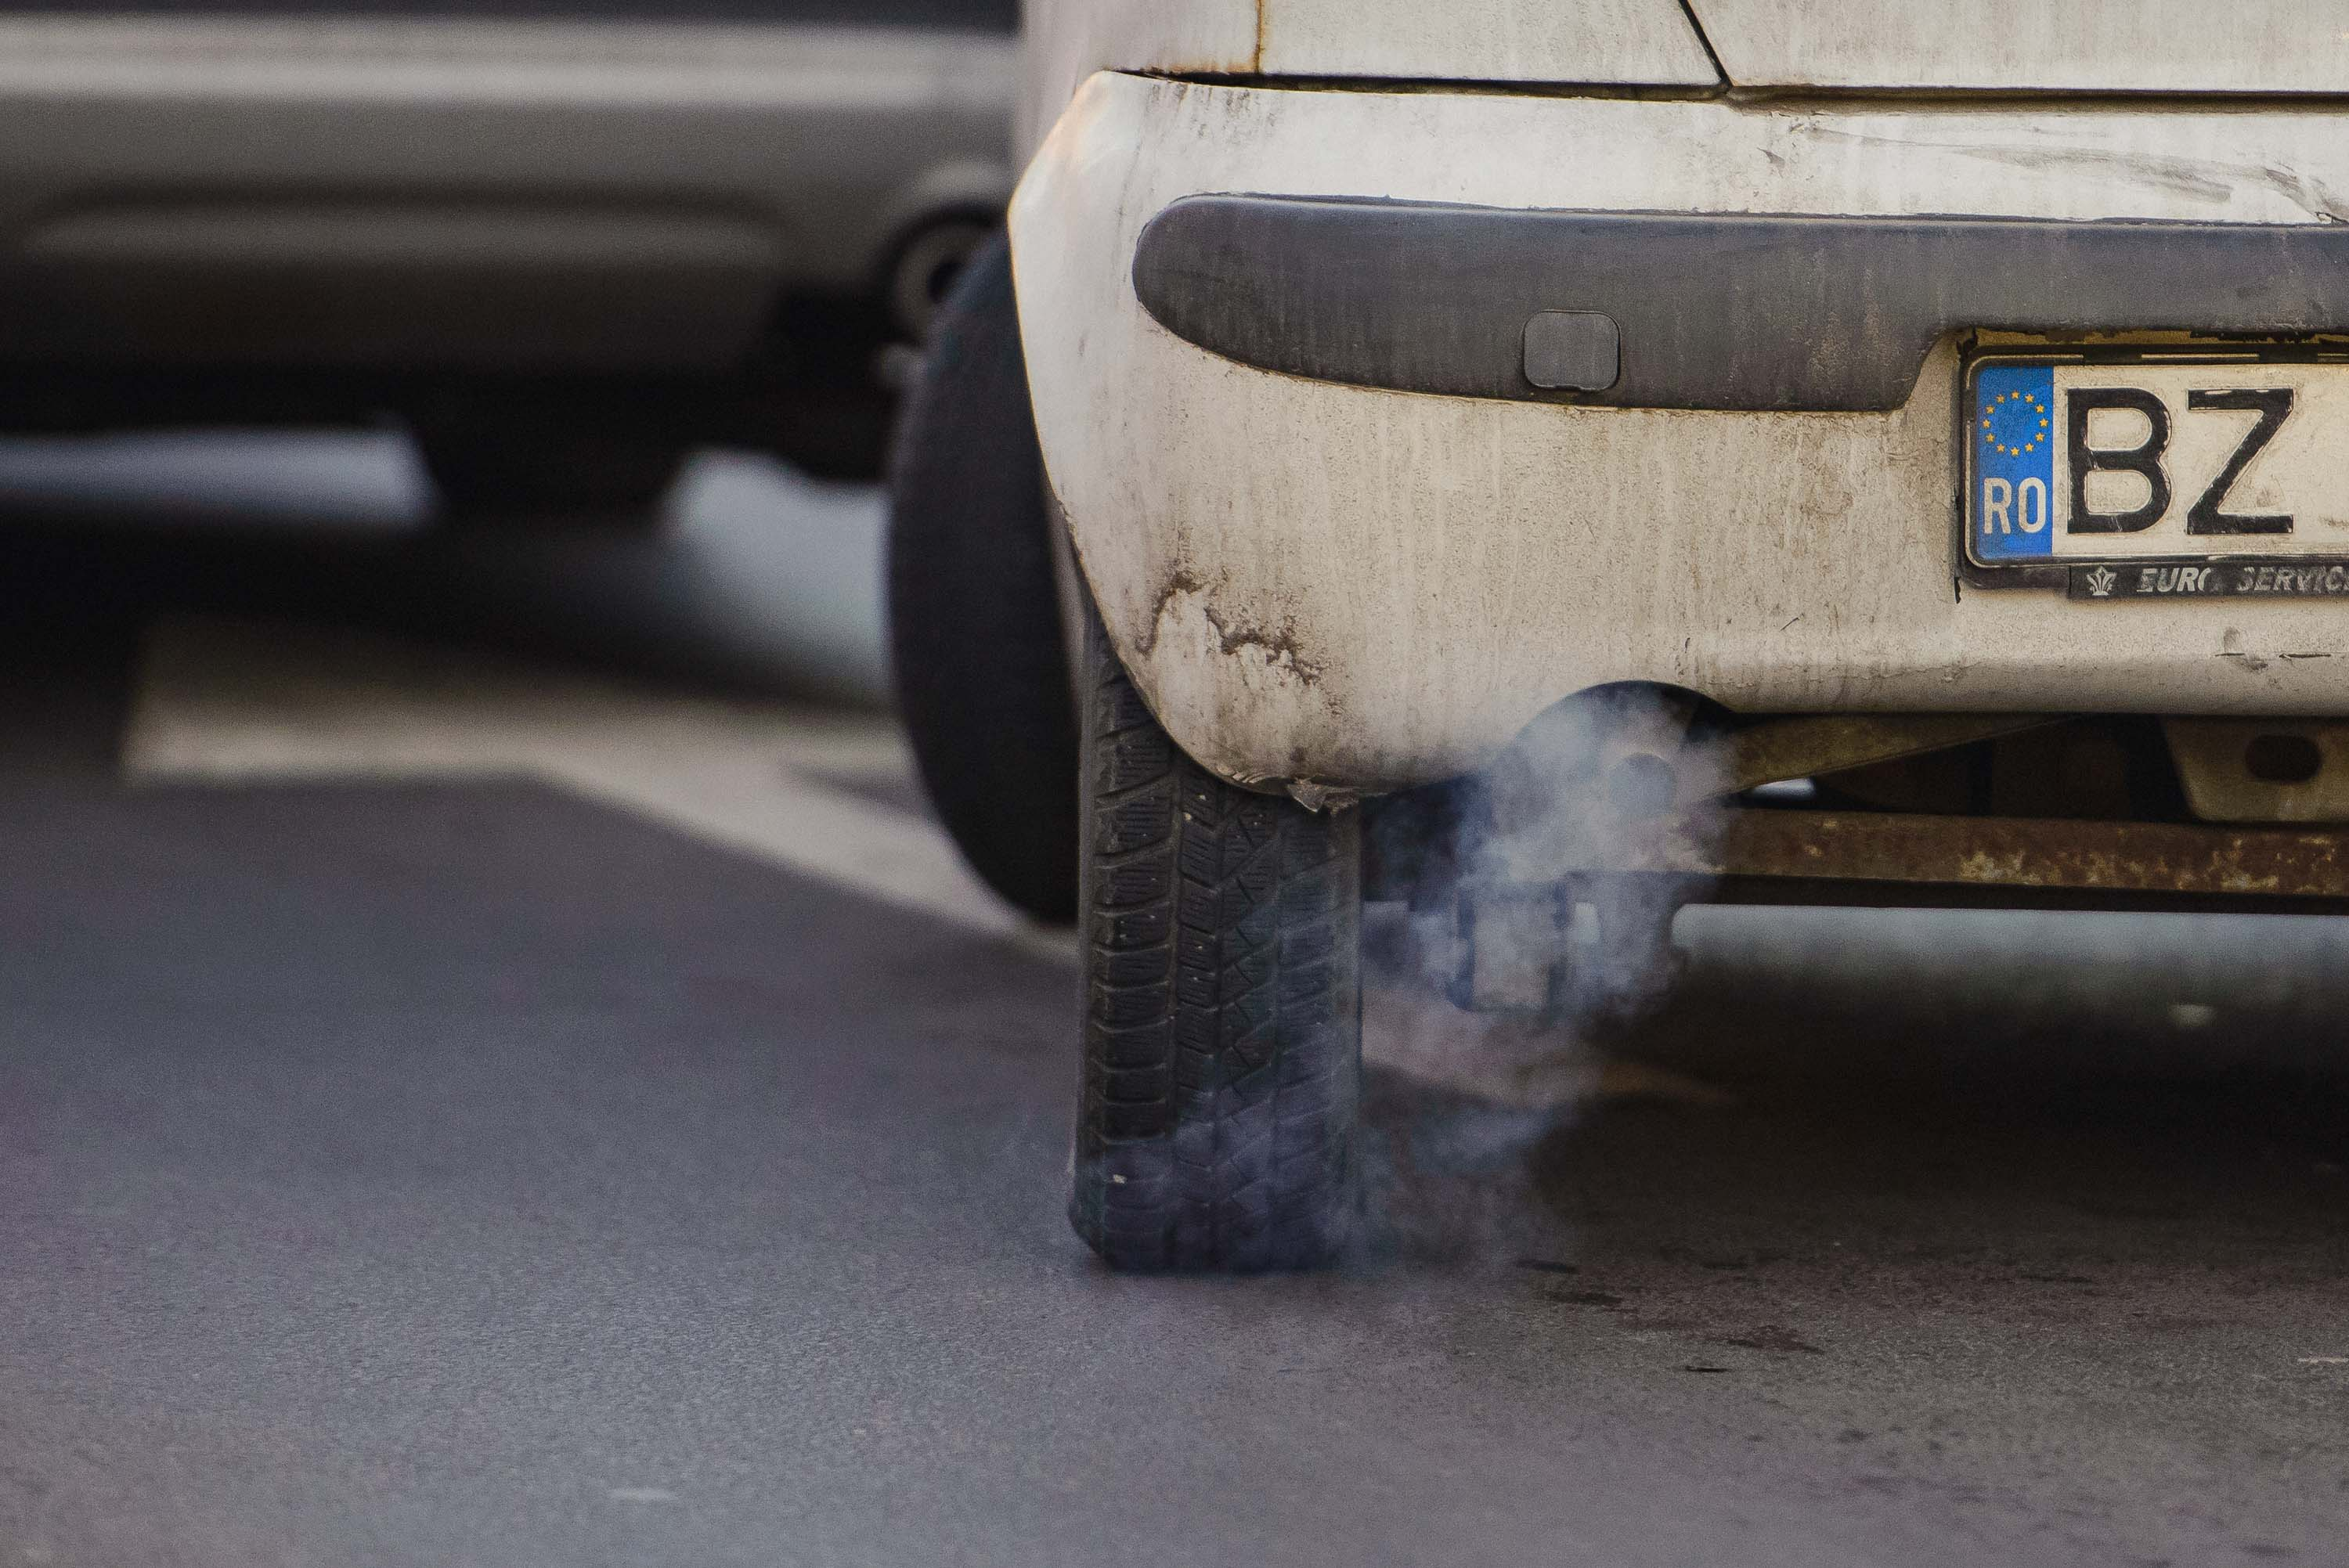 Fossil fuel air pollution causes almost 1 in 5 deaths globally each year